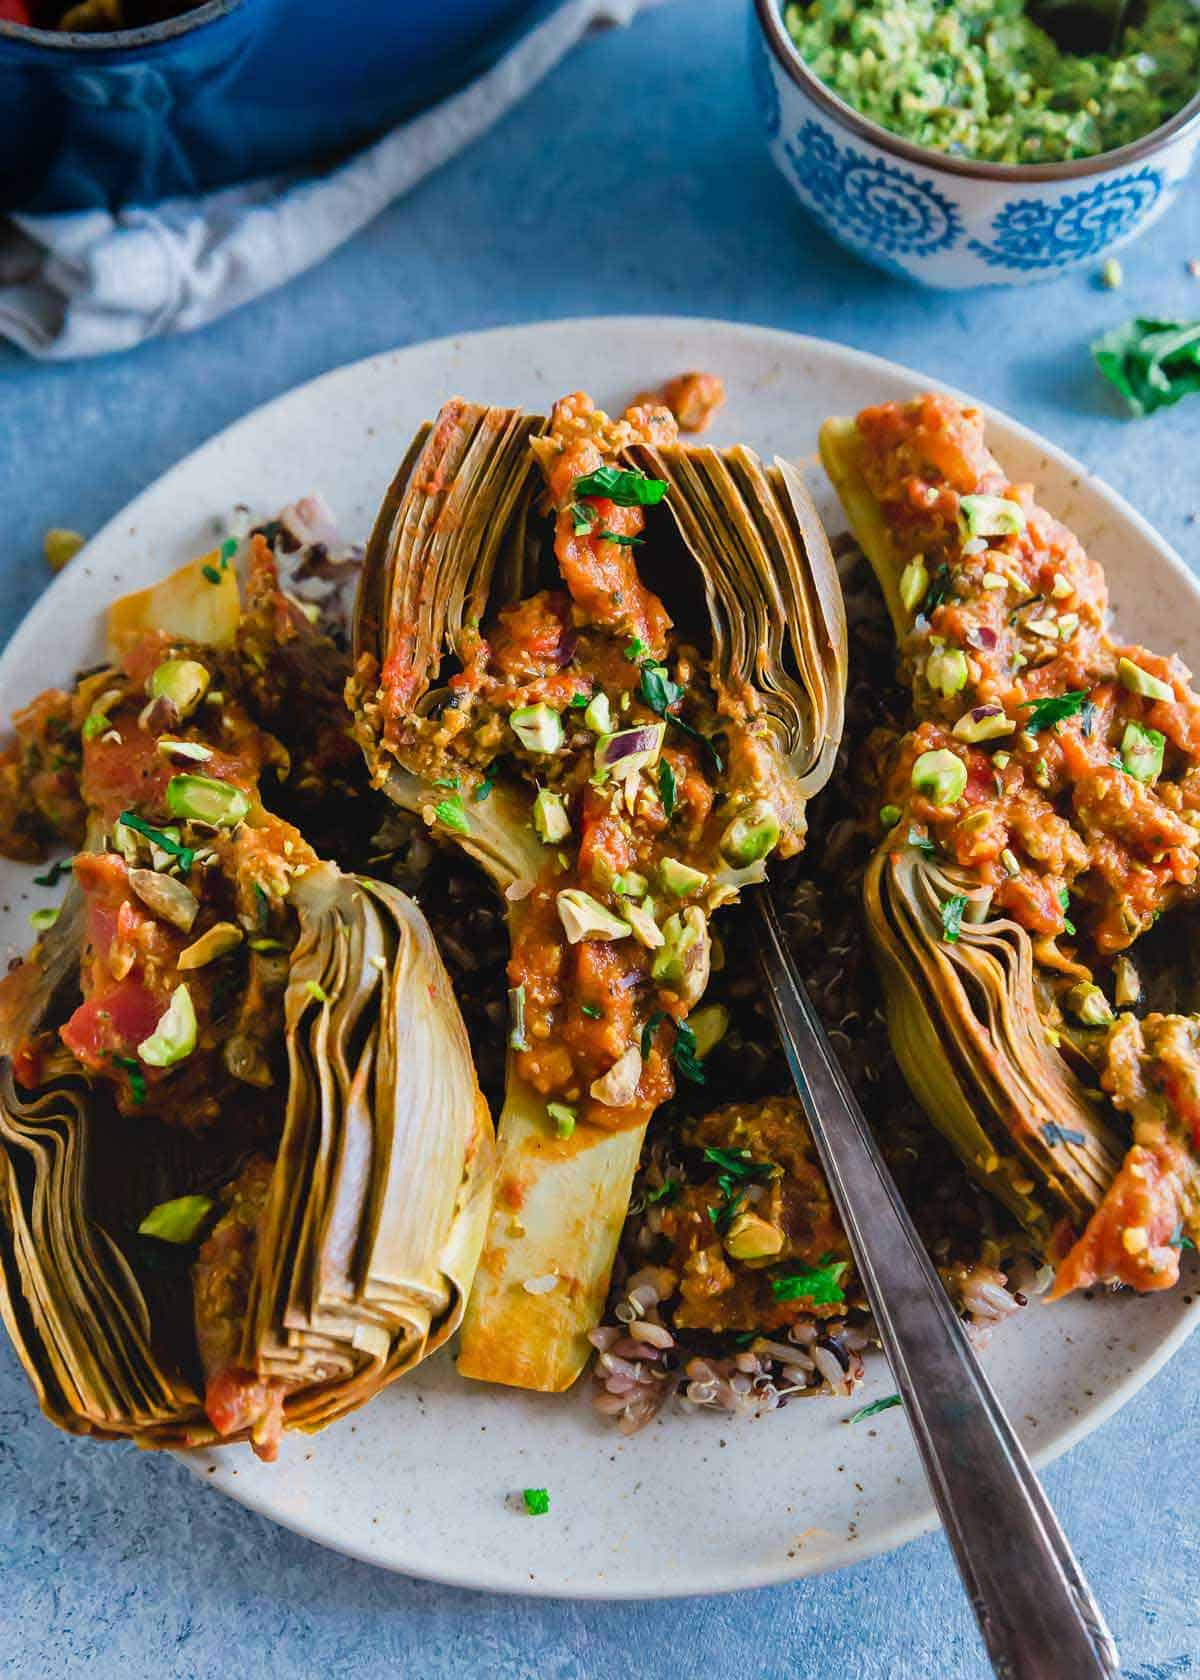 tomato braised artichokes with pistachio pesto